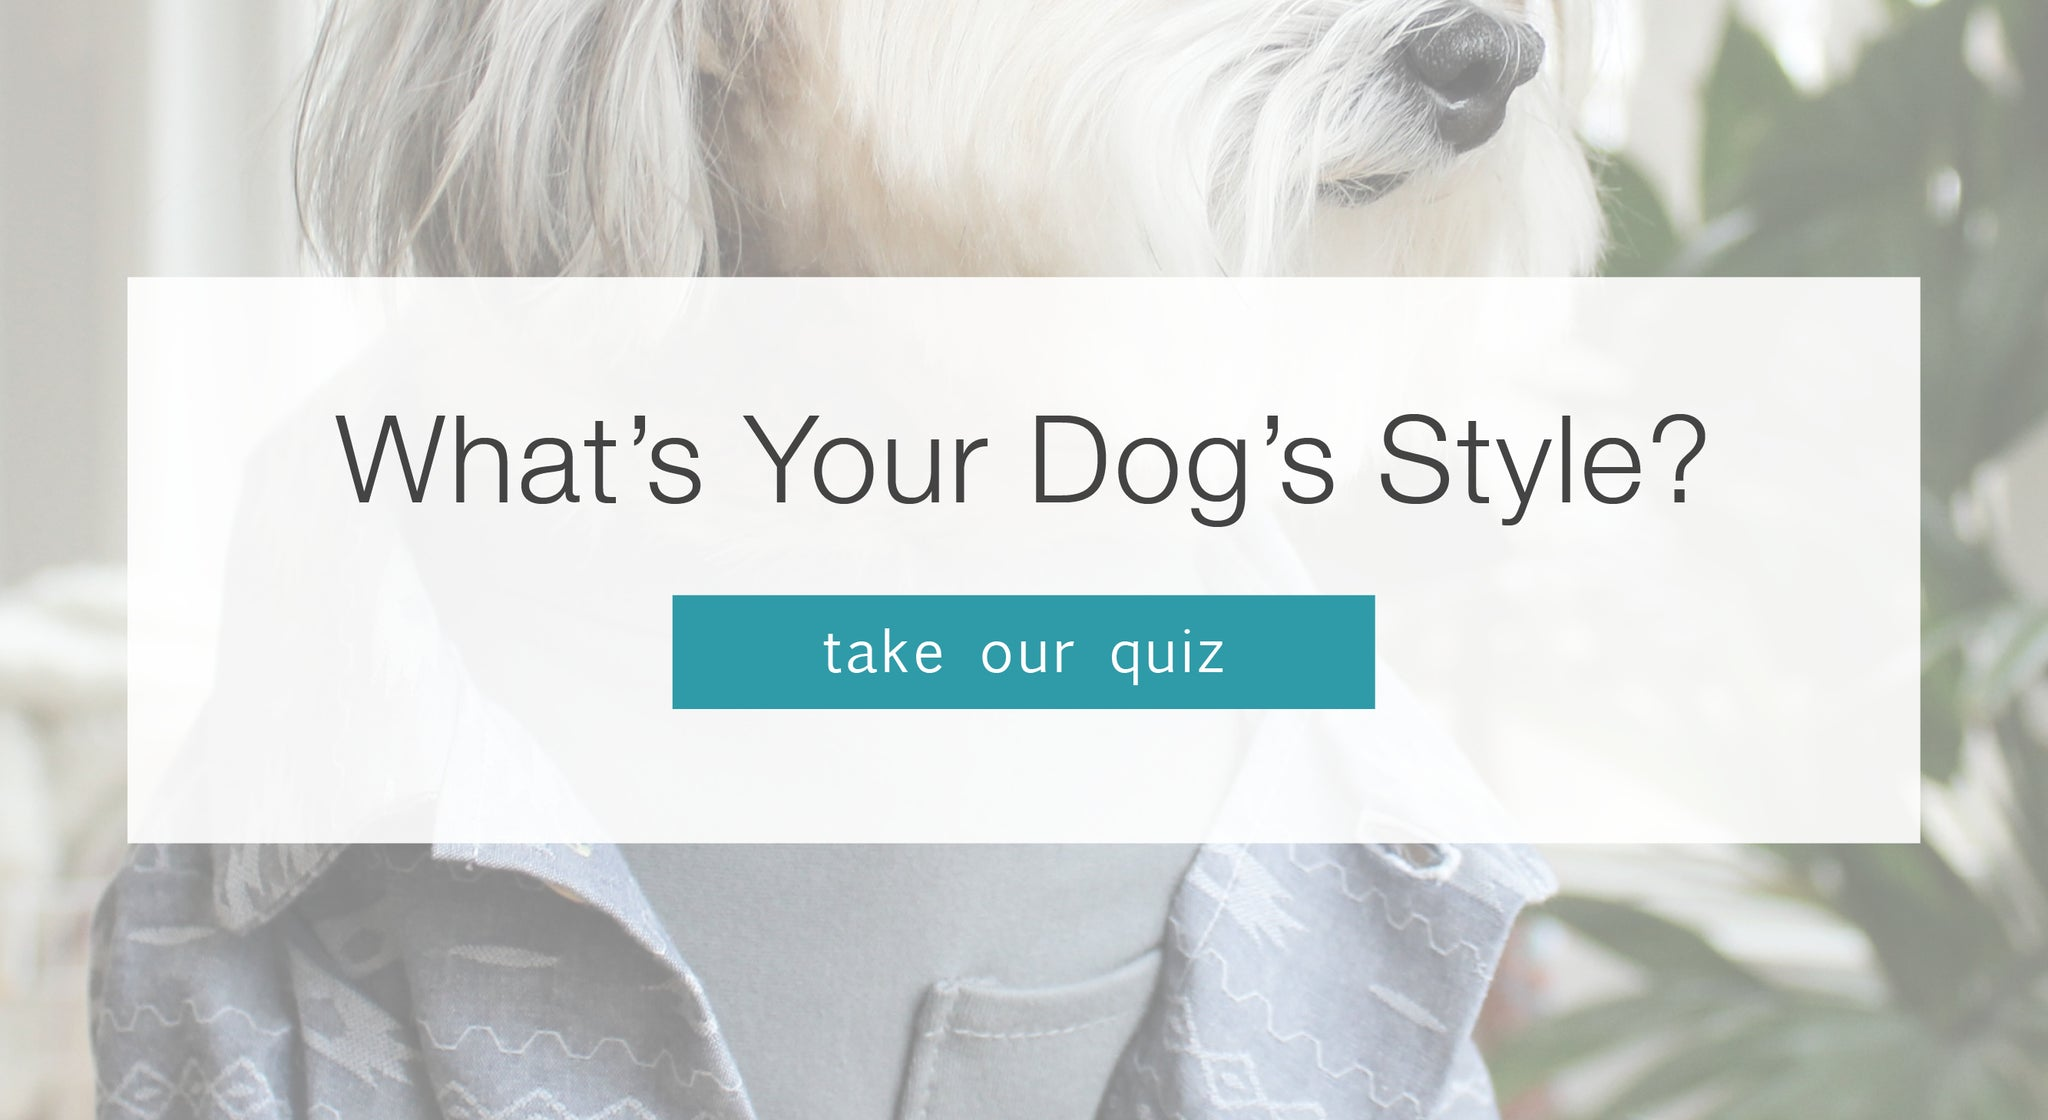 What's Your Dog's Style Quiz by Dog Threads